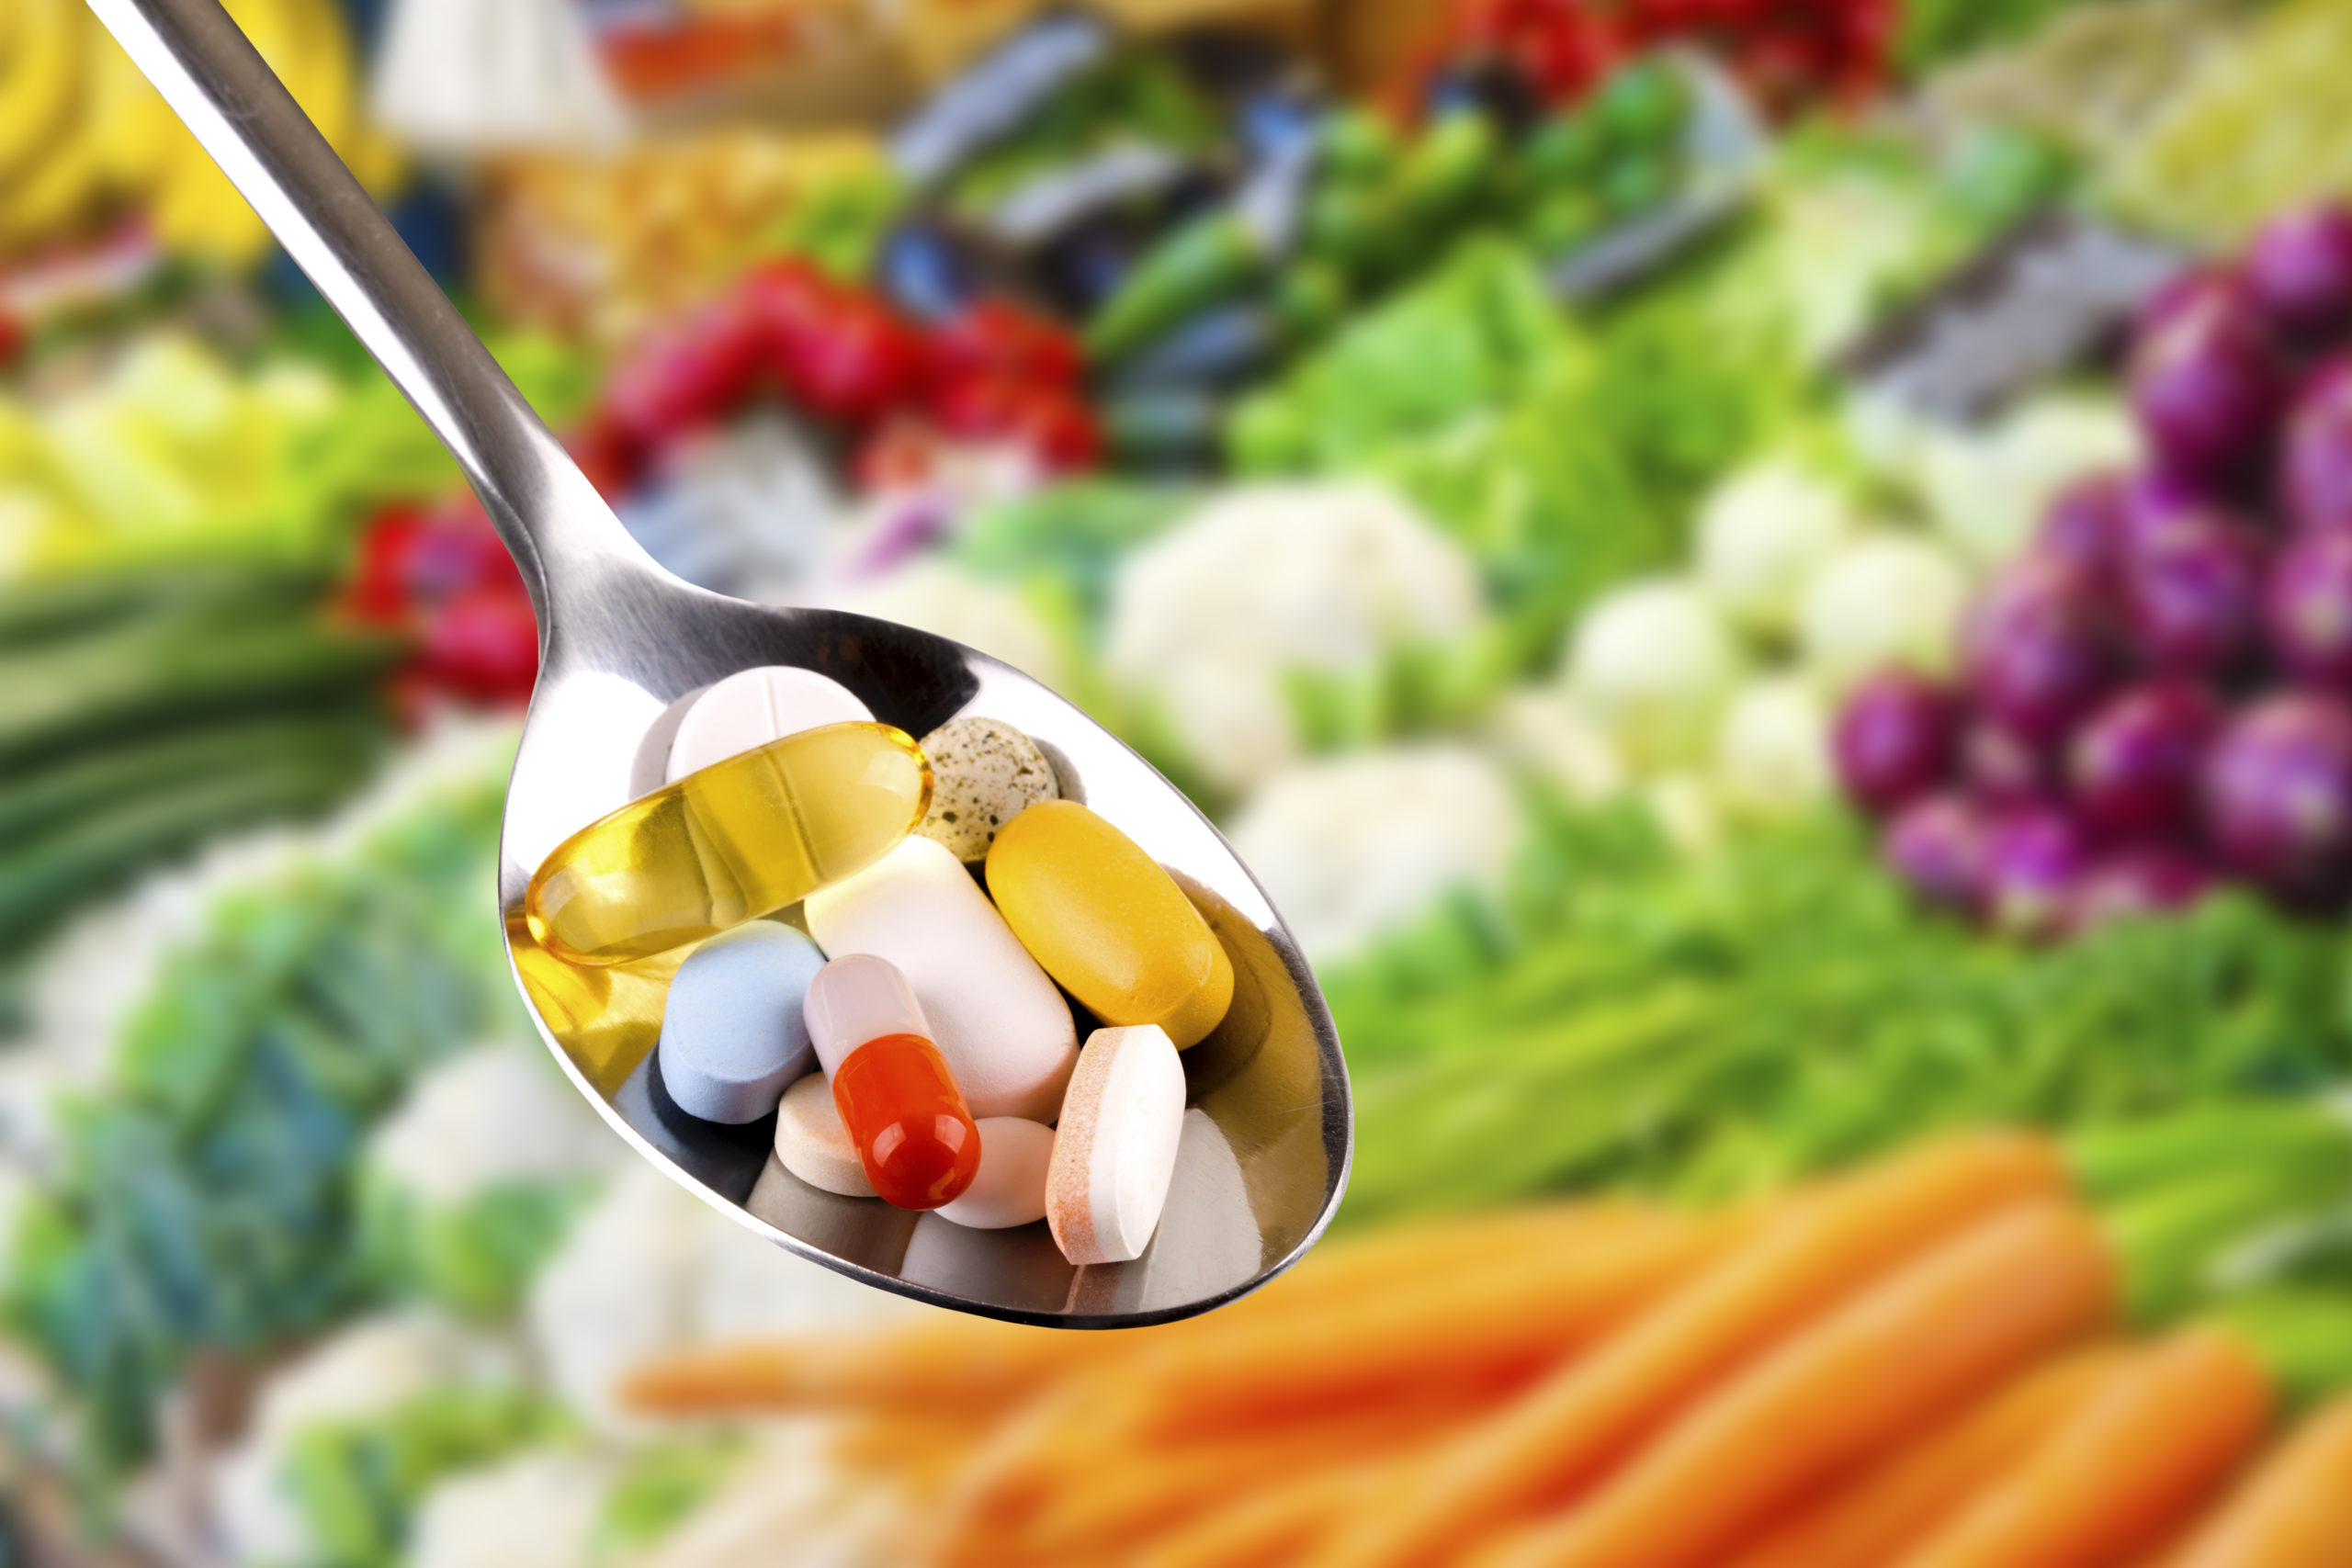 Spoon with pills, dietary supplements on vegetables background.